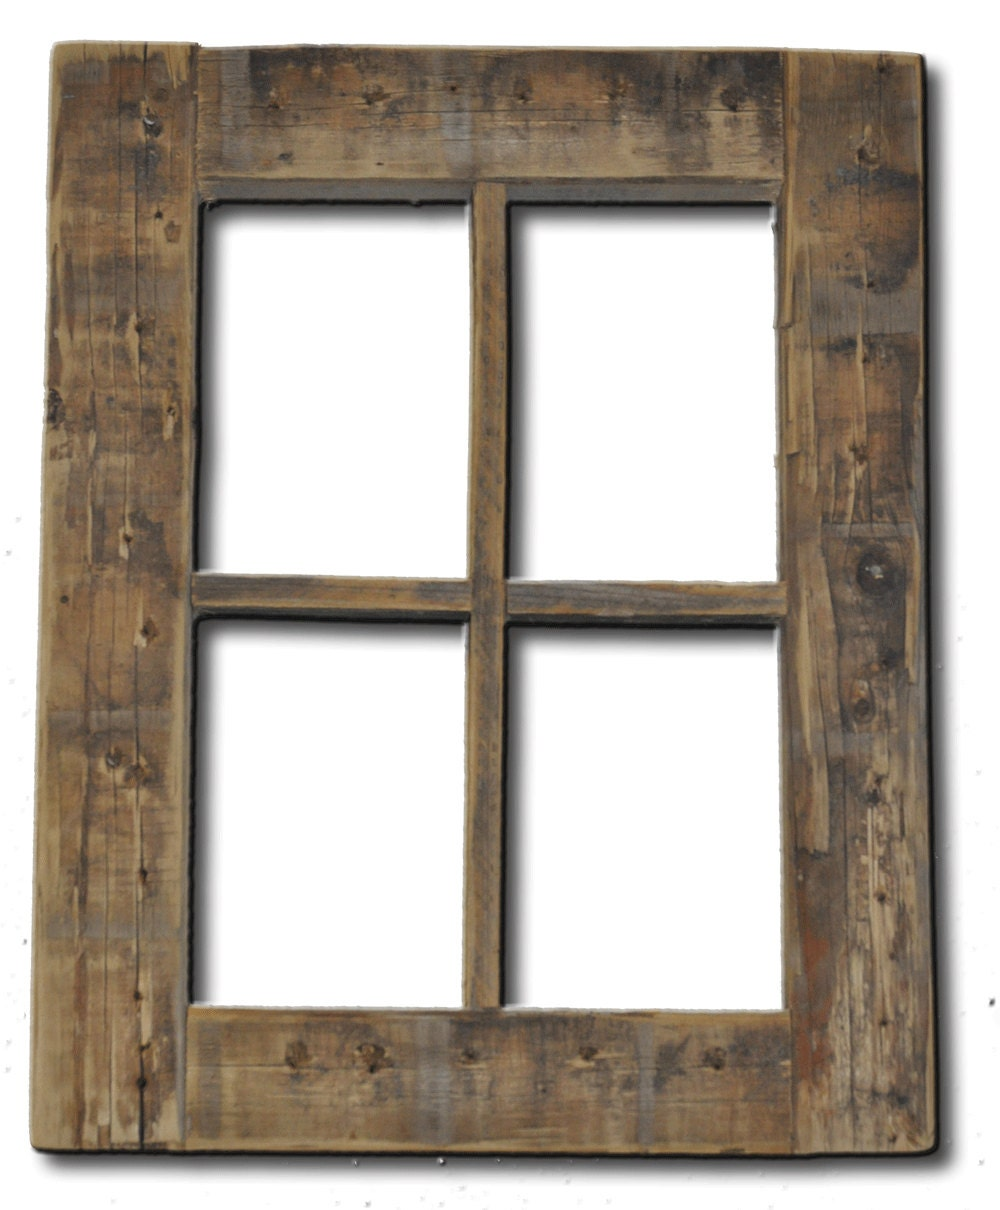 Wood Window Frames : Primitive rustic weathered wood window frame